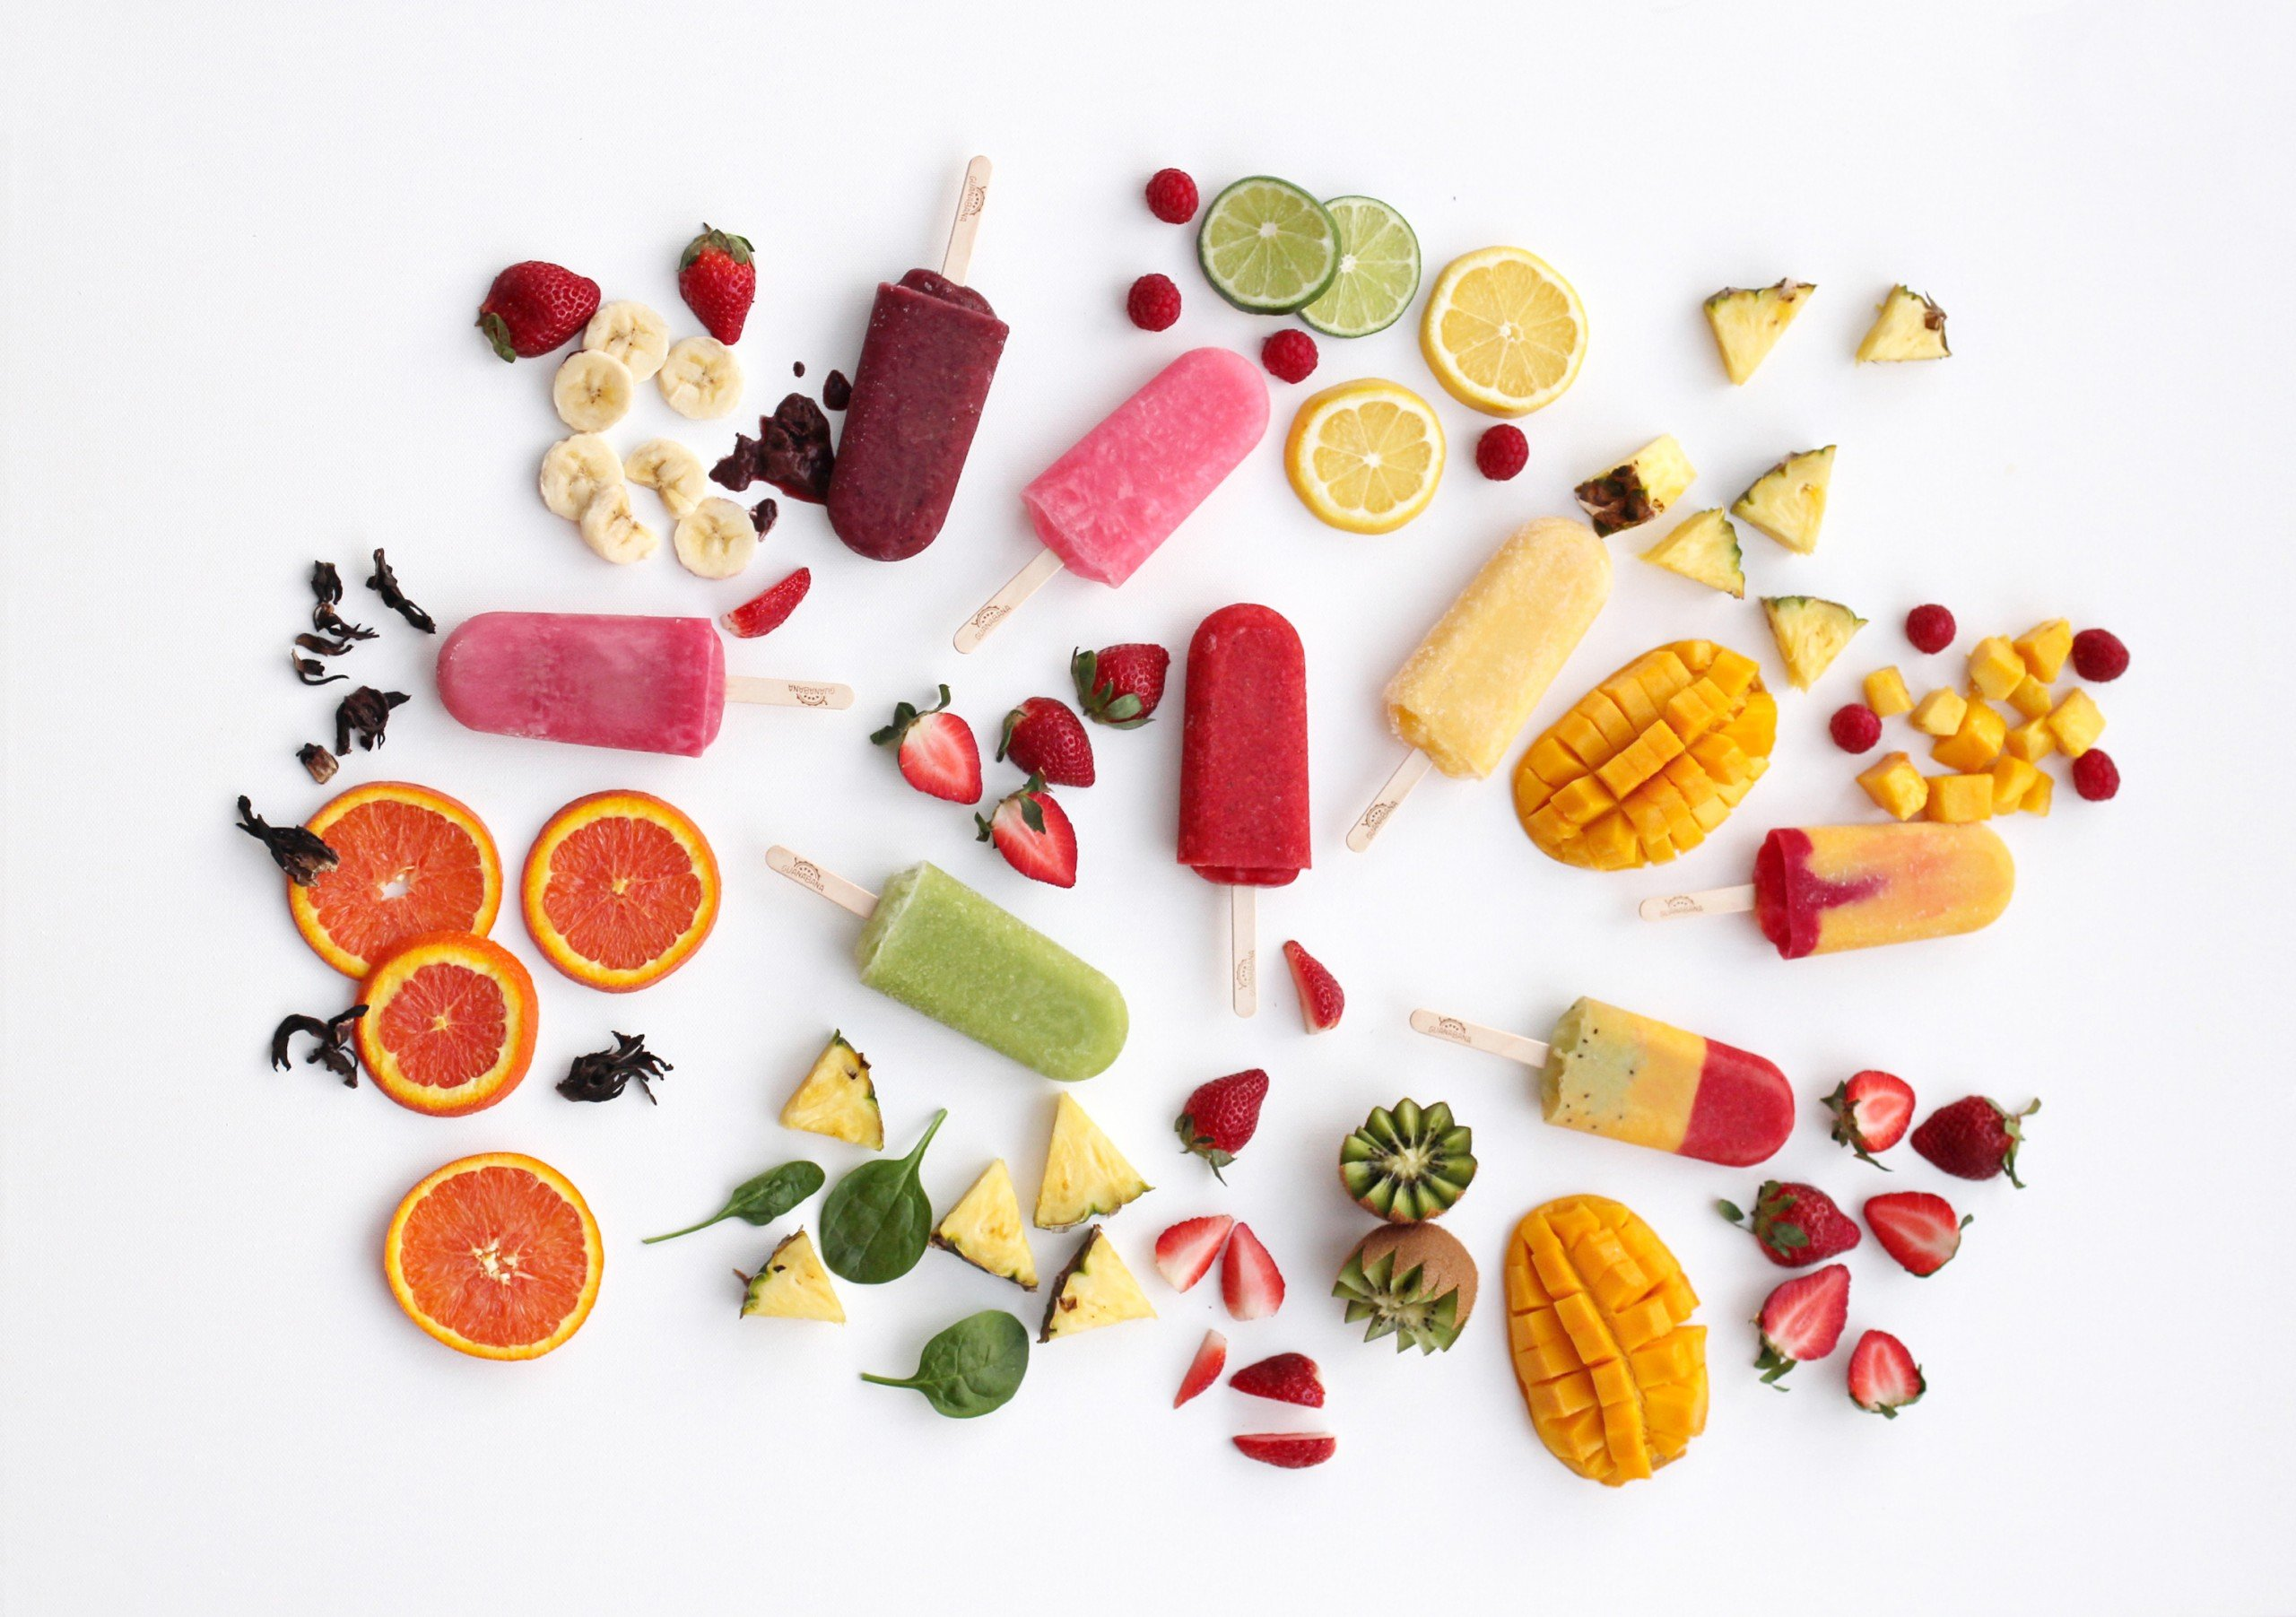 colorful fresh ice pop and fruit assortment